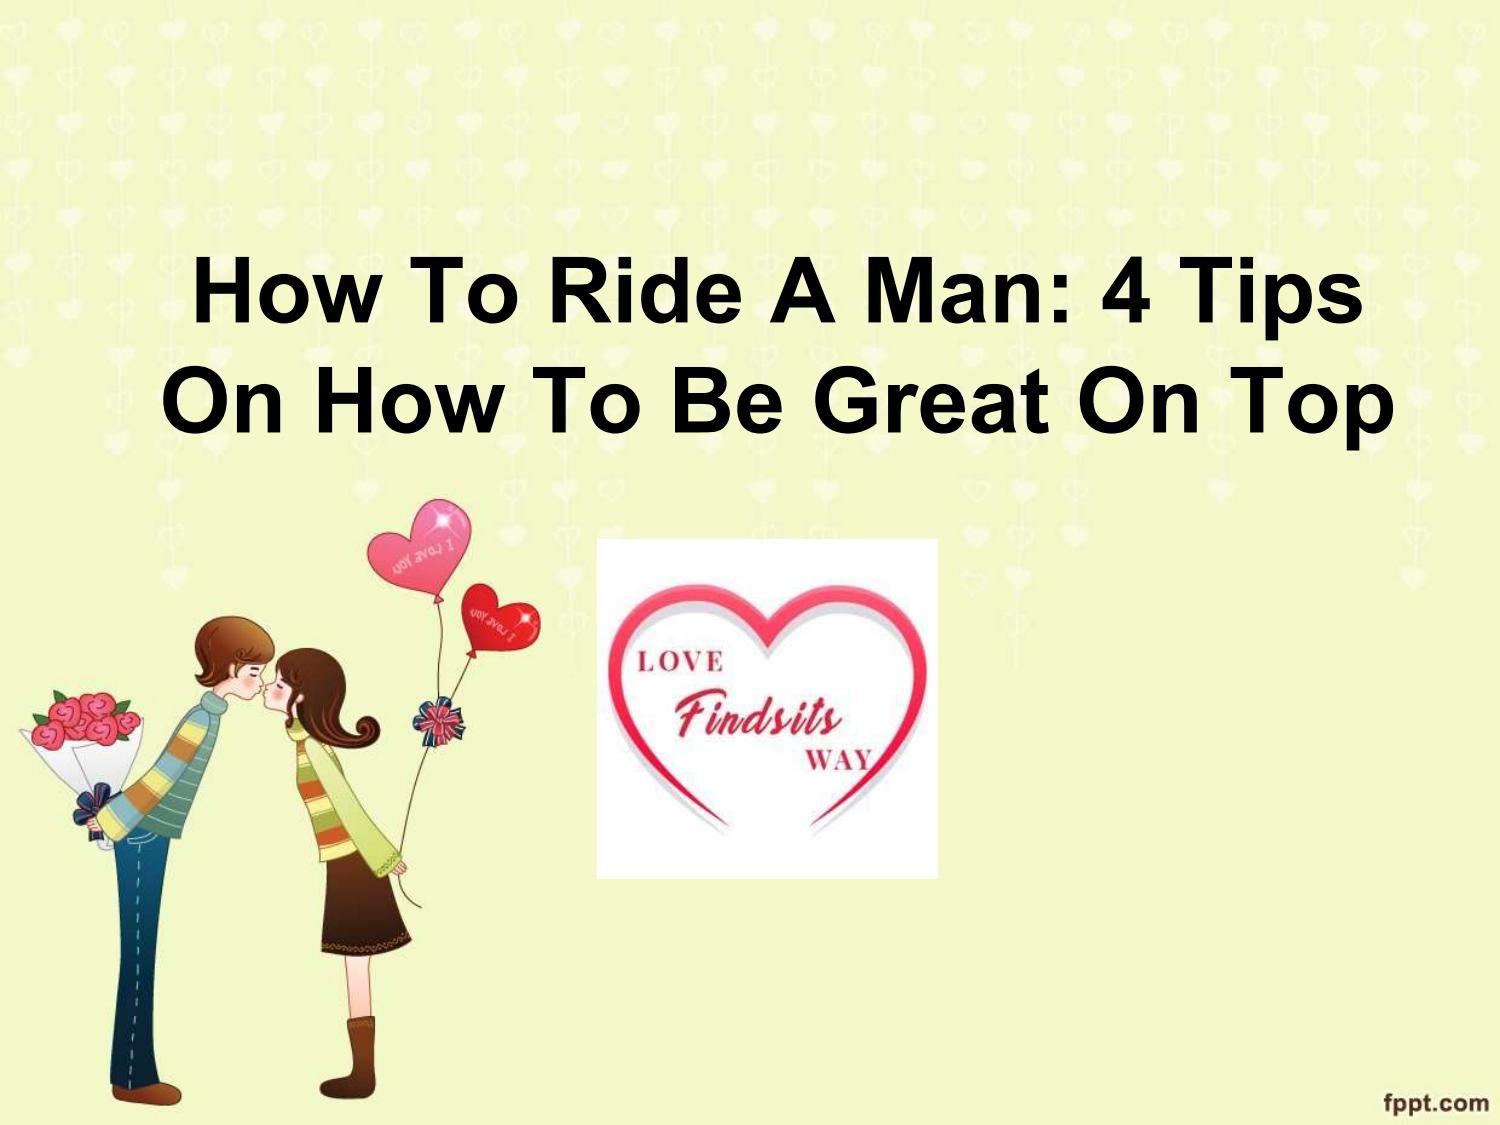 How To Ride A Man: 4 Tips On How To Be Great On Top by